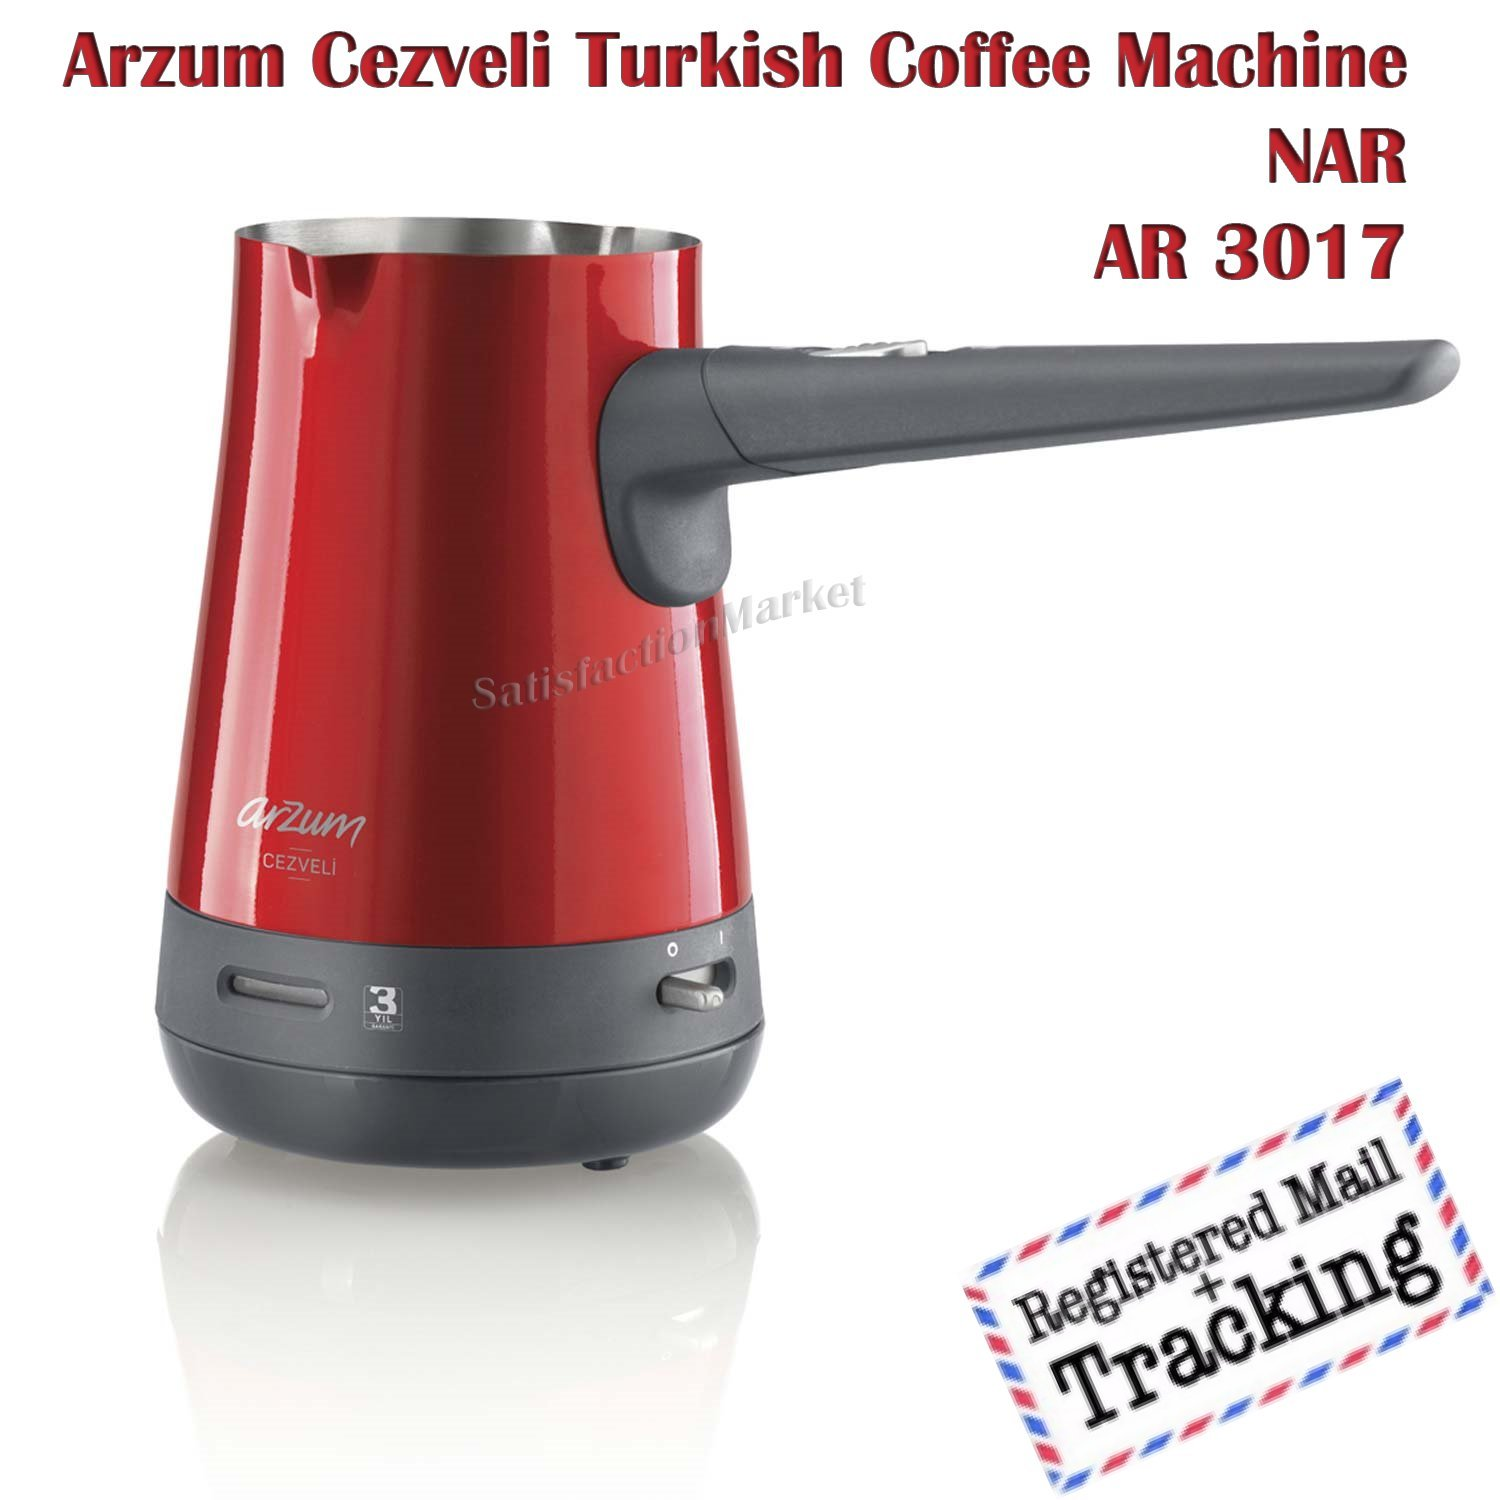 Arzum Cezveli Turkish Coffee Maker AR3017 Nar RED Color by Arzum